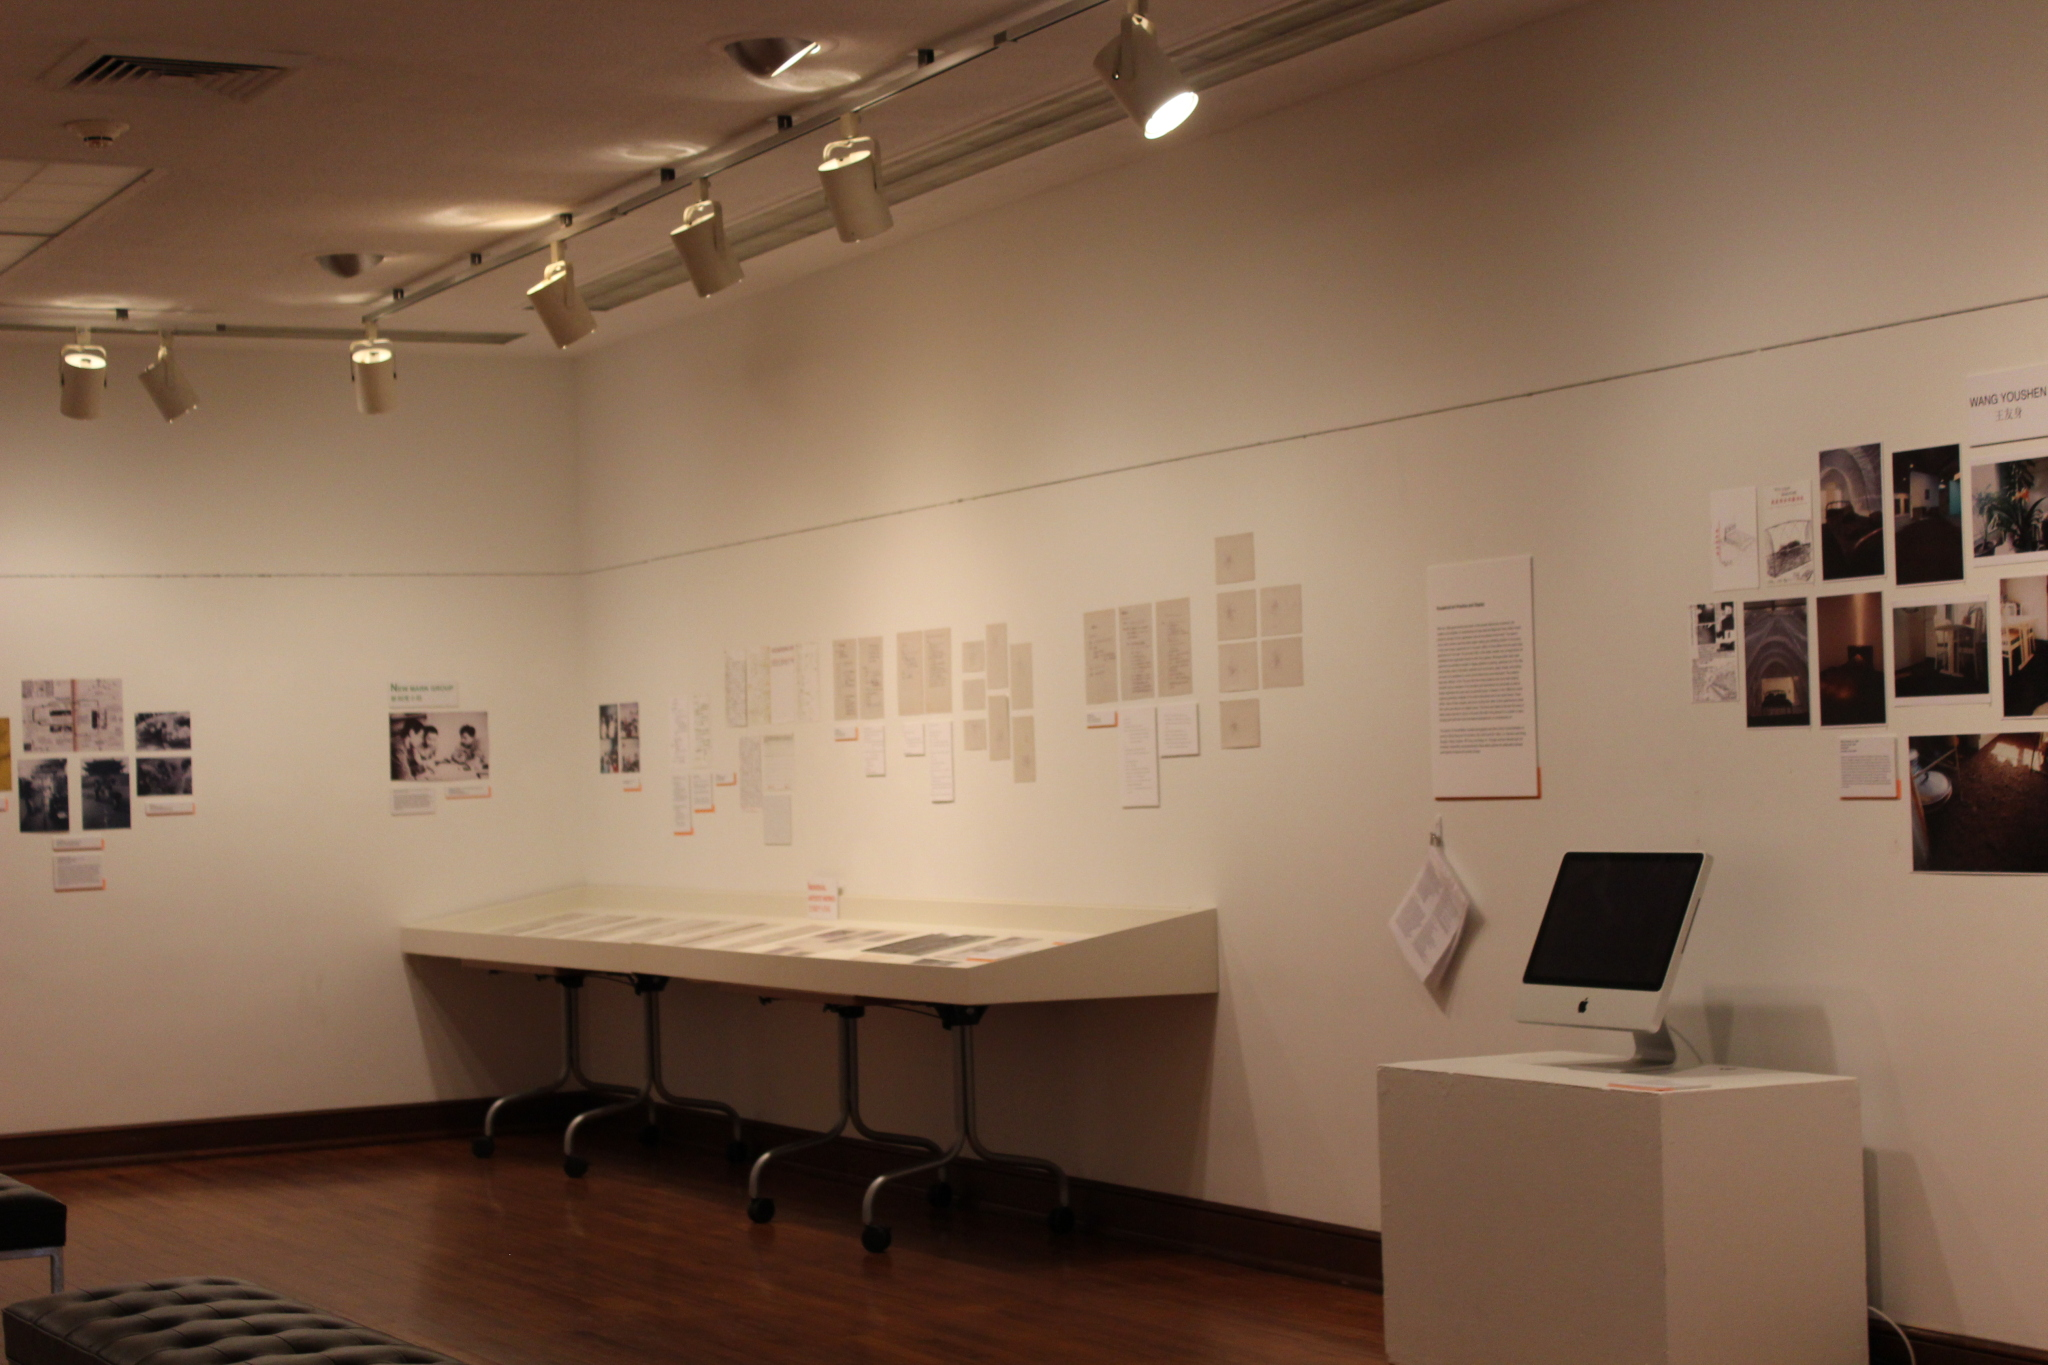 Exhibition View - Section II